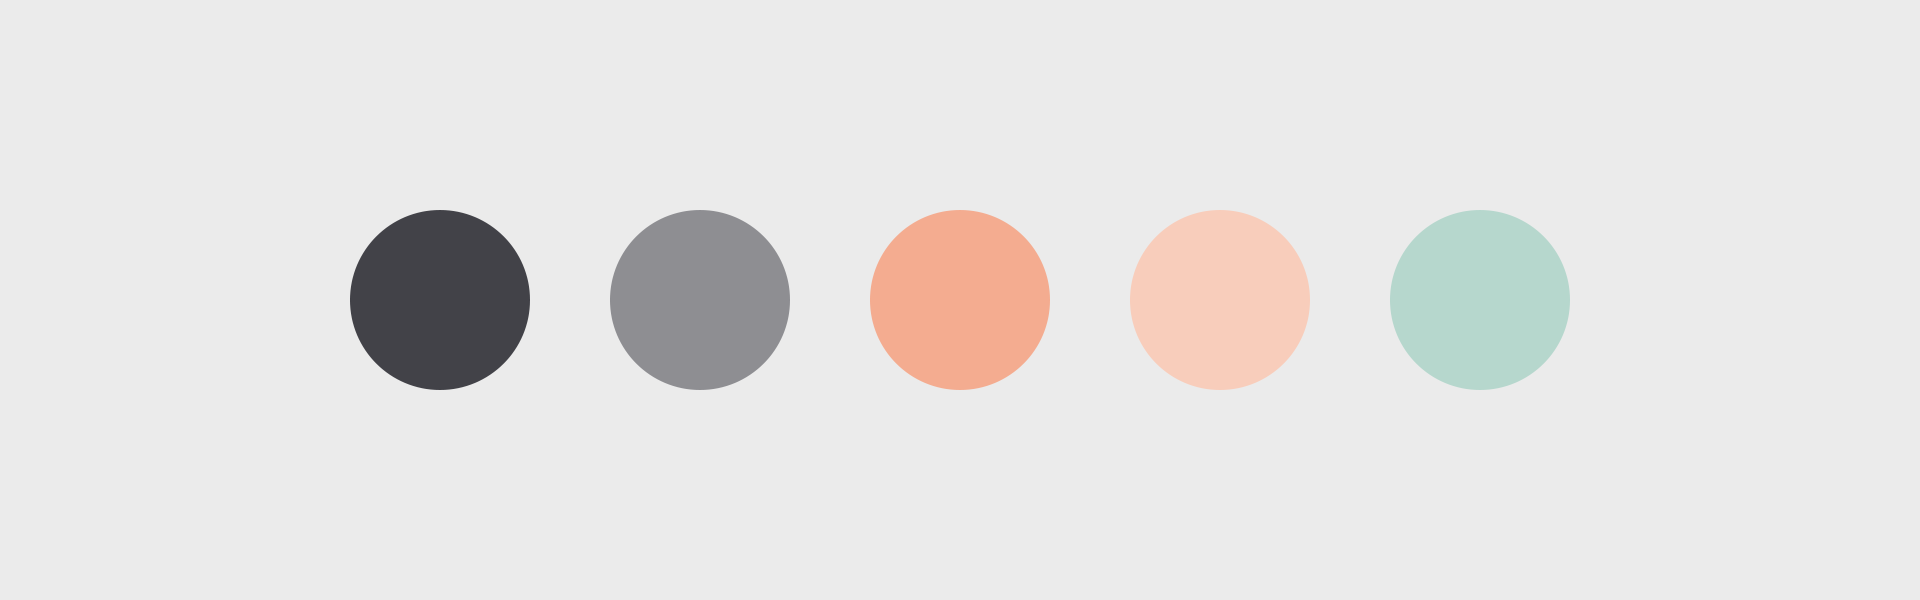 helene-chataigner-pm-identity-color-palette